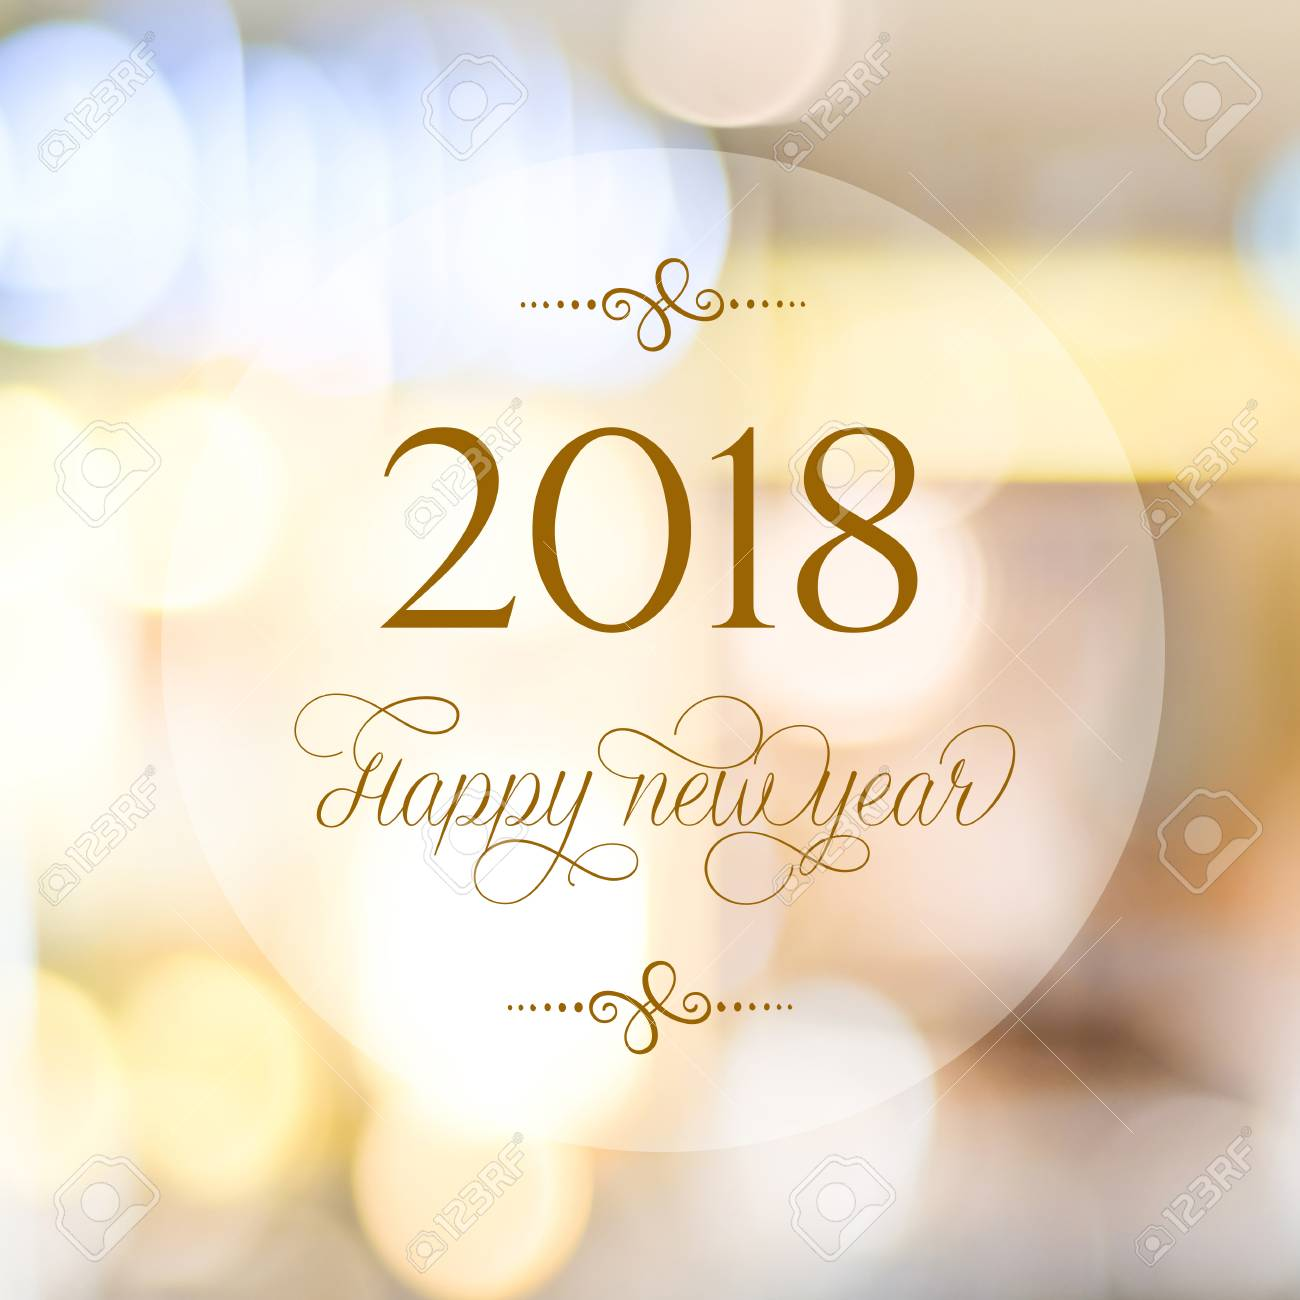 happy new year 2018 on abstract blur festive bokeh background banner stock photo 89217055